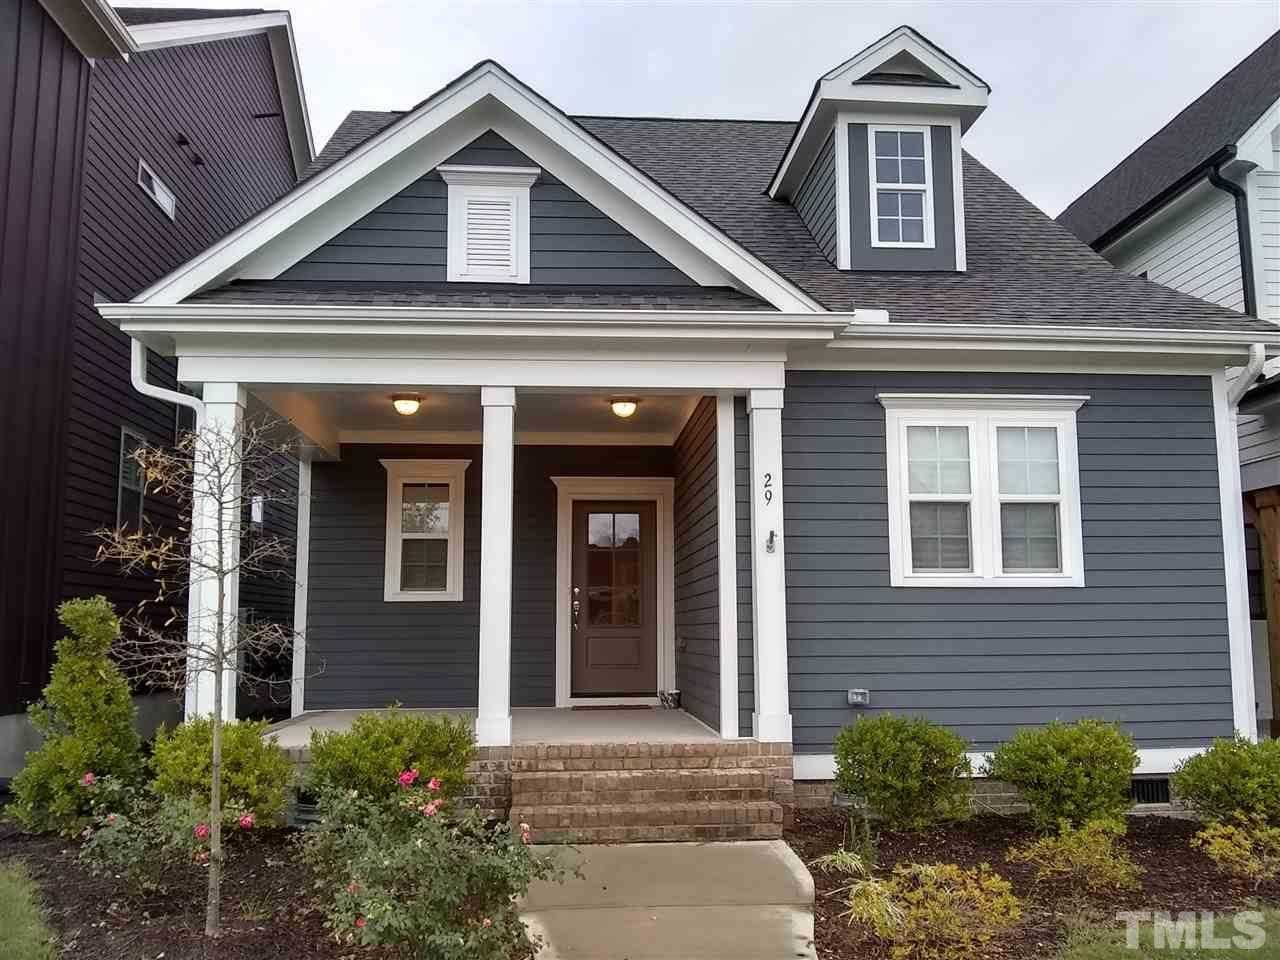 $315,000 - 3Br/3Ba -  for Sale in Briar Chapel, Chapel Hill